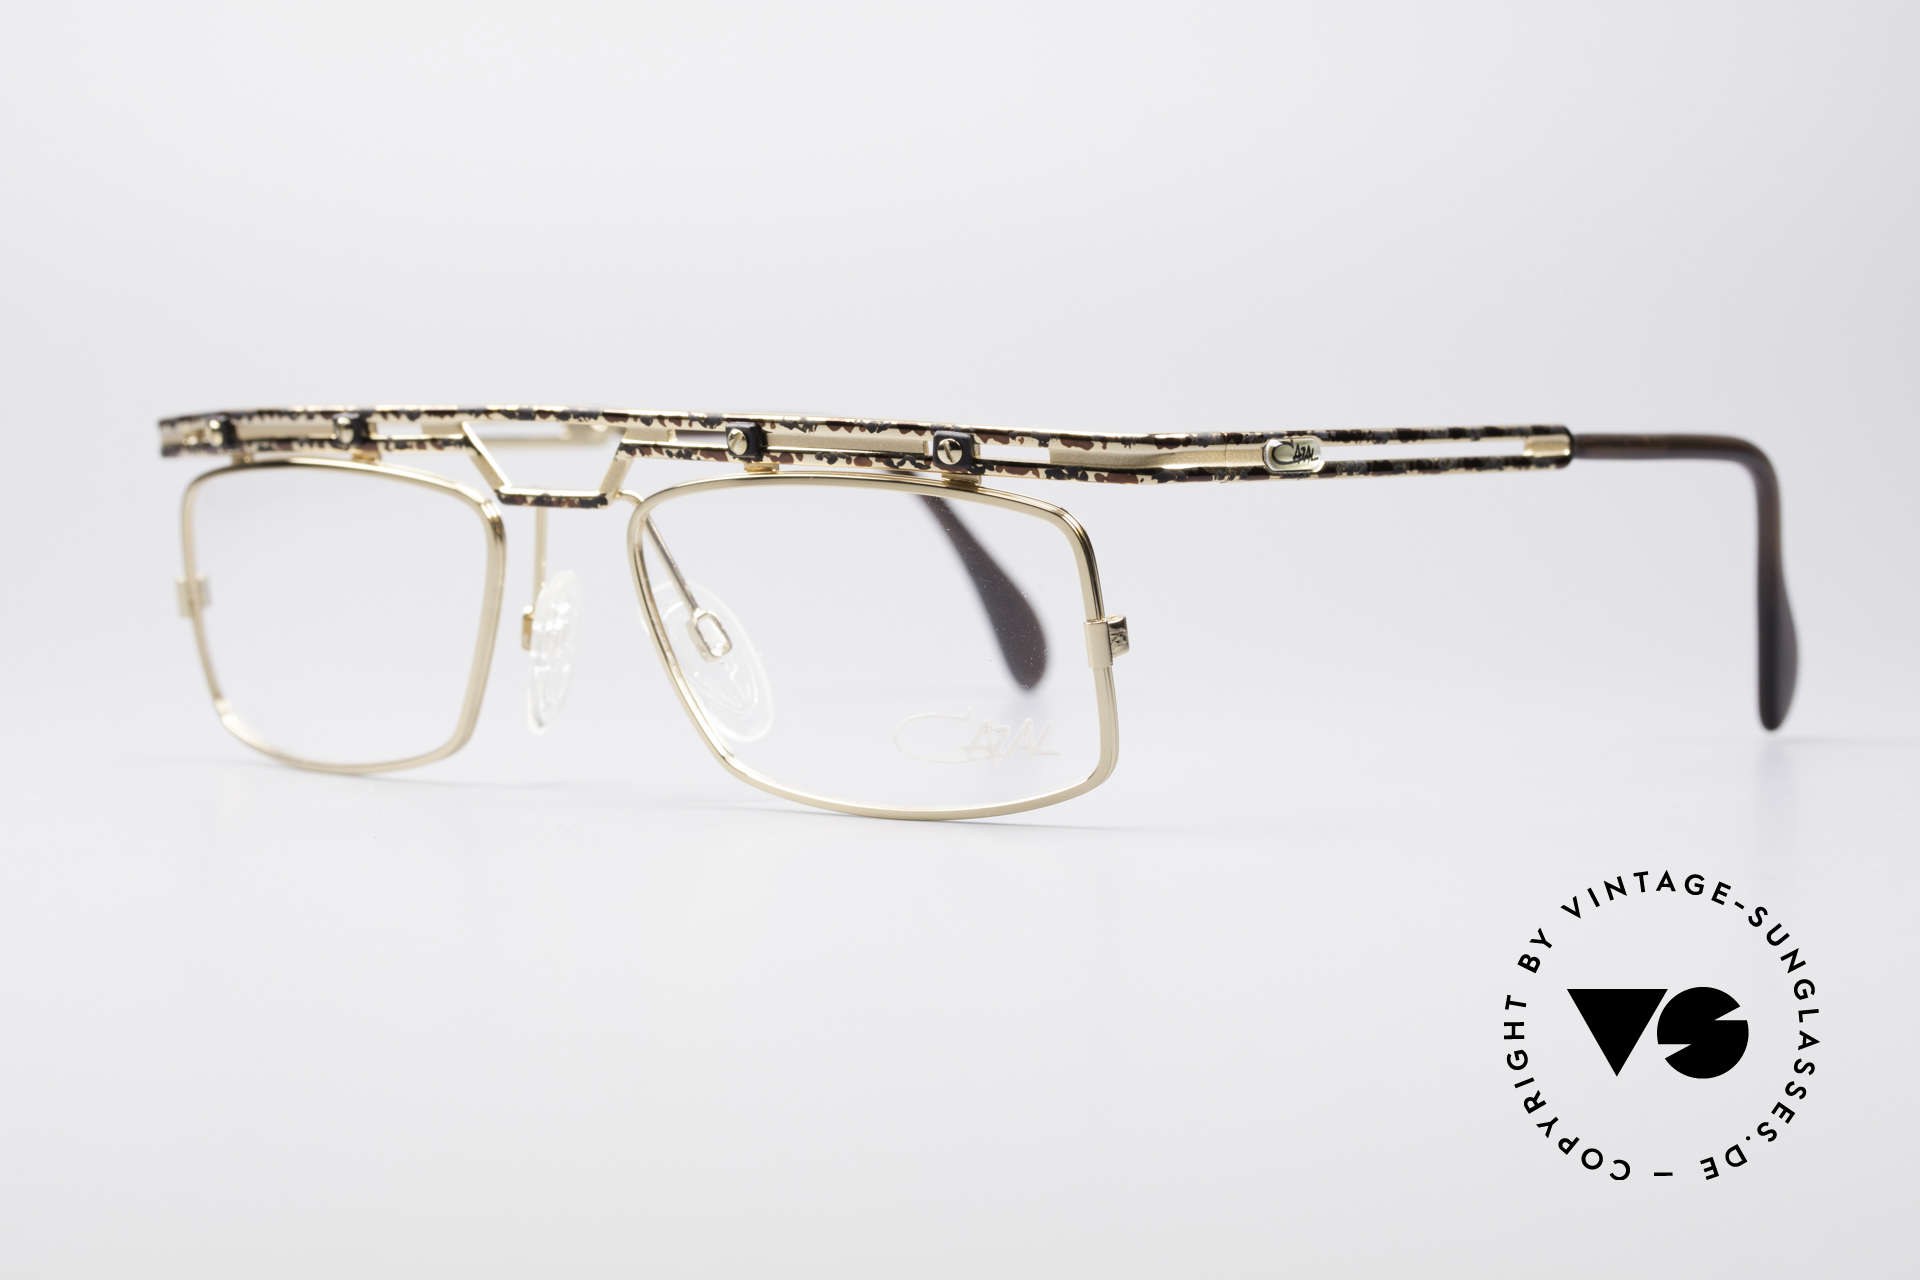 Cazal 975 True Vintage No Retro Glasses, great metalwork and overall craftmanship; durable!, Made for Men